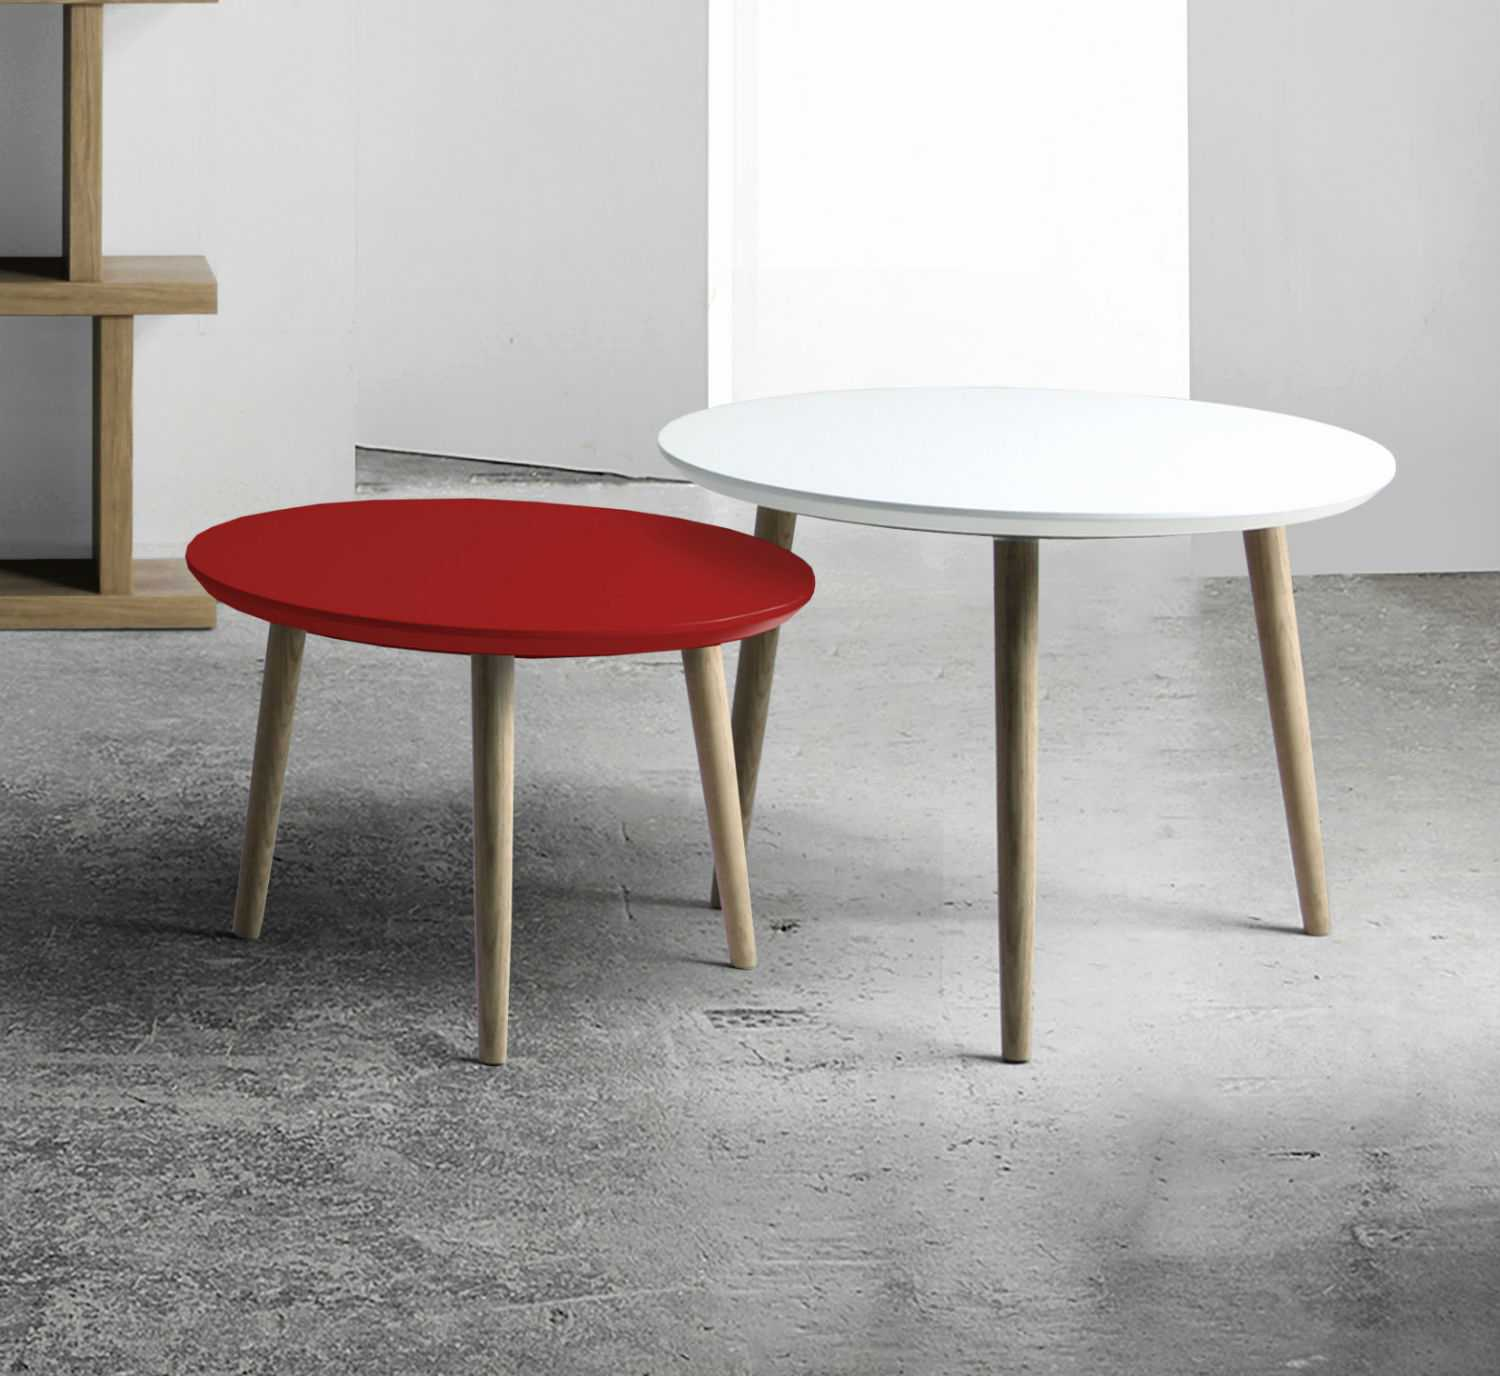 creer une table basse scandinave  ladolceviedchatfr